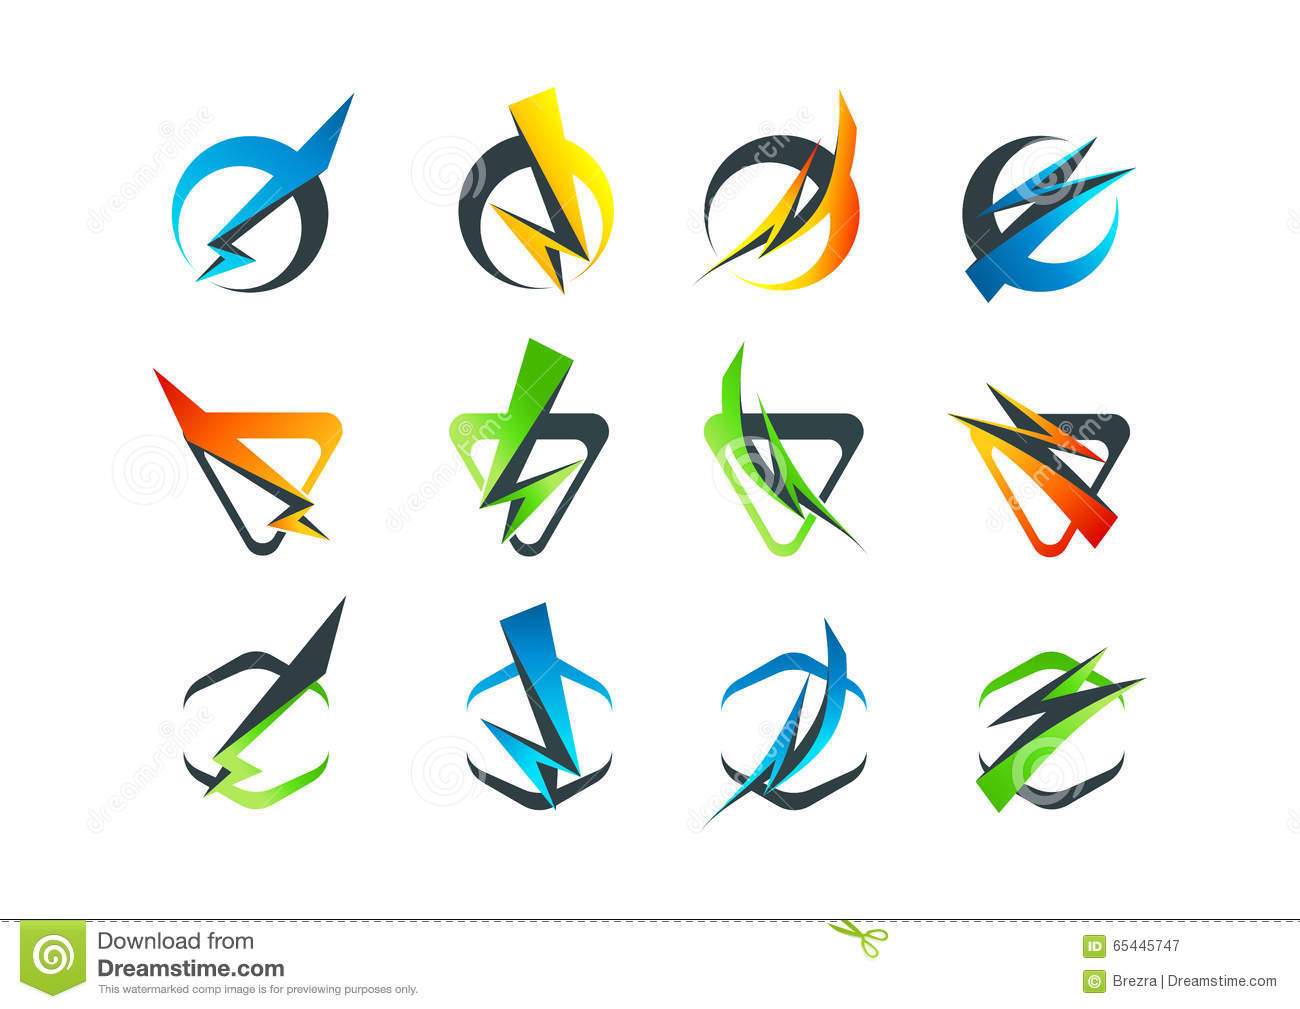 corporate business logo flash symbol icon and thunderbolt concept rh dreamstime com free vector download corporate flyer free vector download corporate flyer